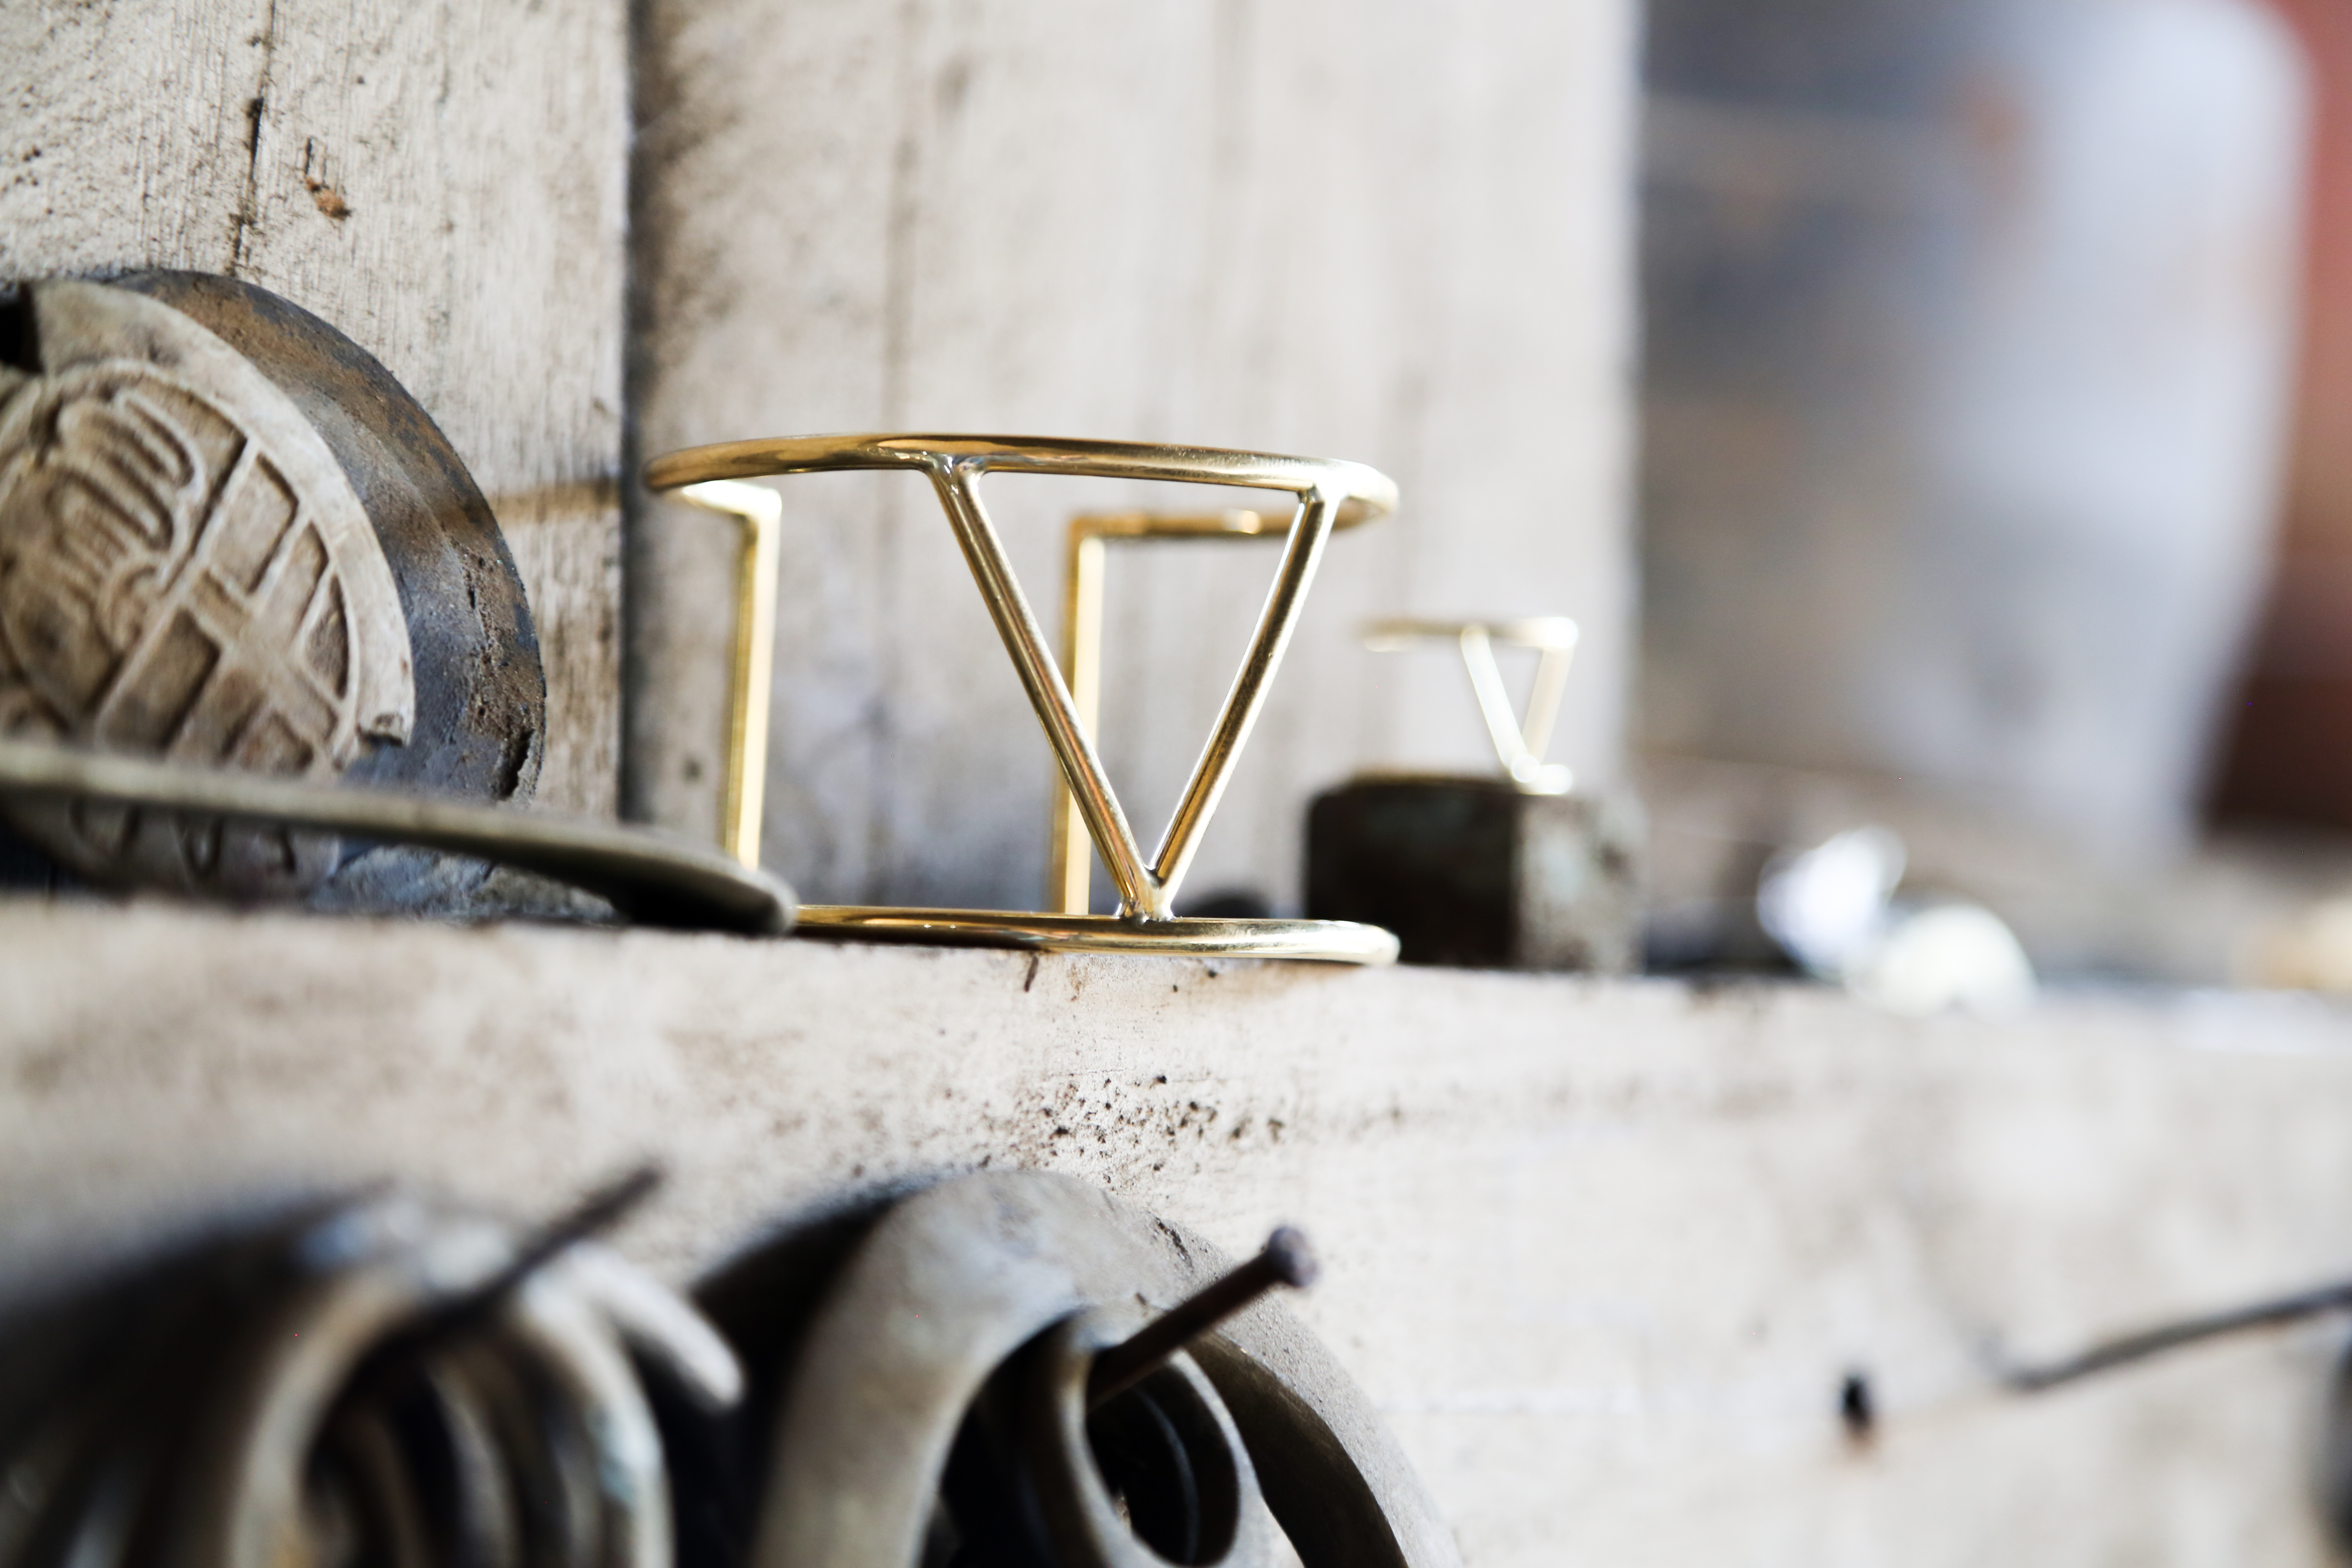 A bracelet created by Soko artisans in partnership with Pencils of Promise